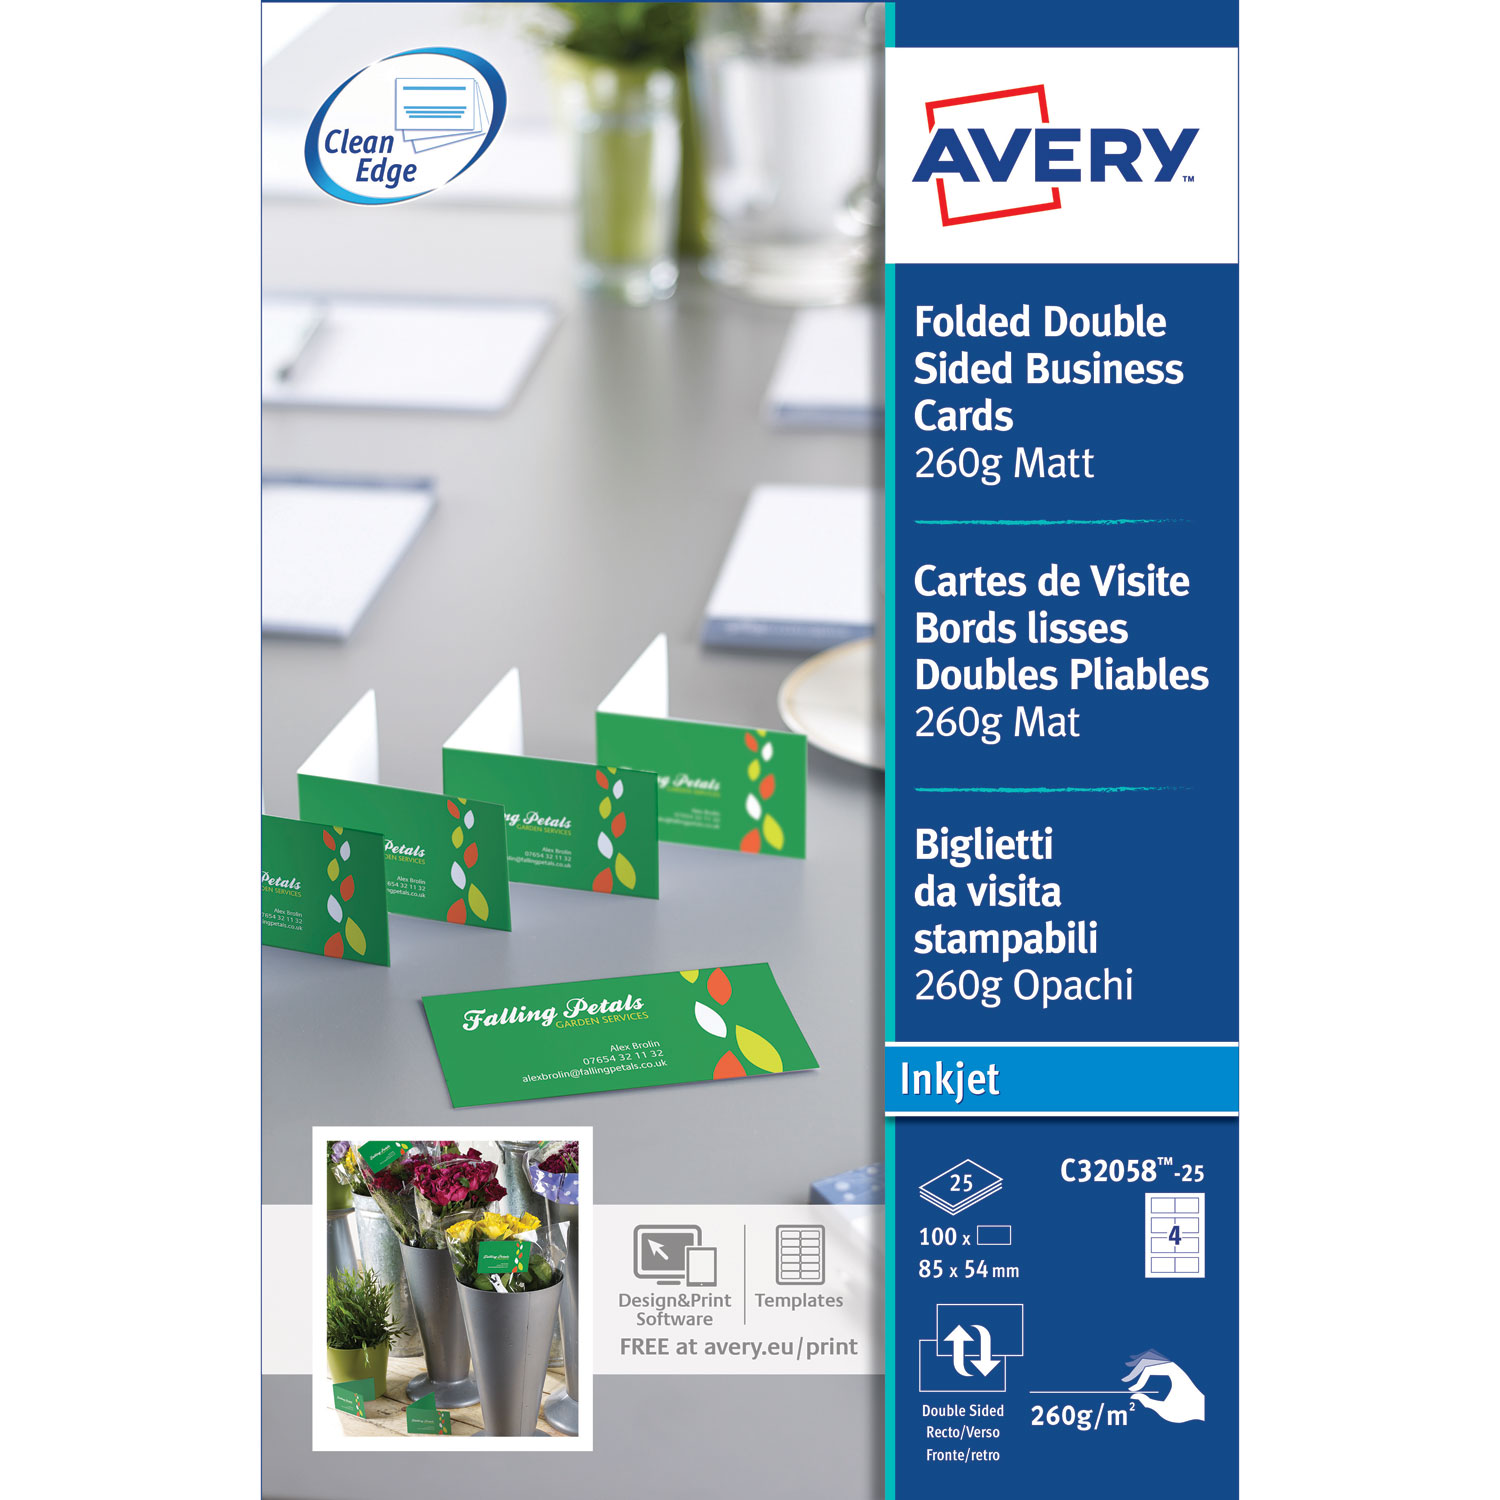 Porte Carte De Visite Avery QuickClean 100 Cartes 85 X 54 Mm